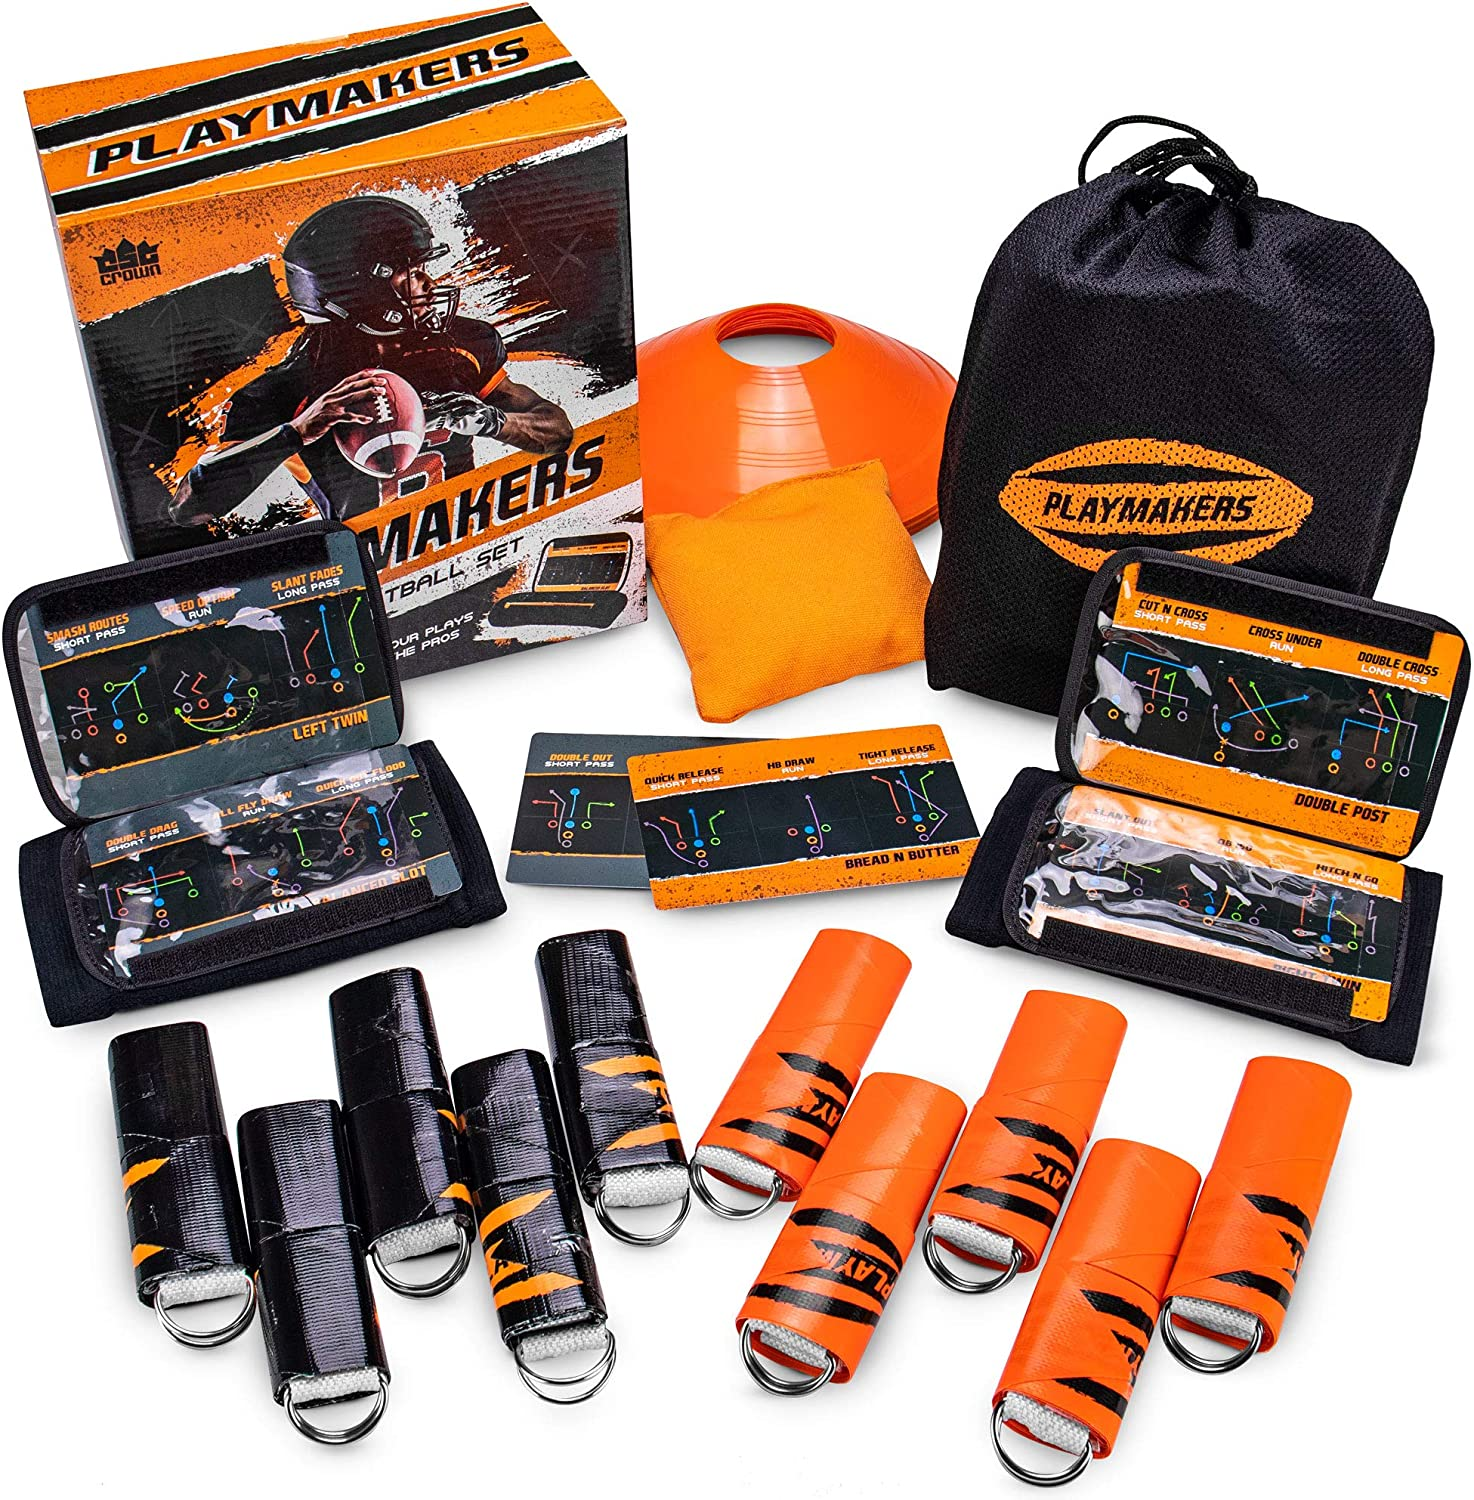 Playmakers Flag Football Set: Call Plays Like the Pros – Includes 2 Teams of 5 Flags, 2 QB Wristbands, 6 Double-sided Play Inserts (18 Plays), 10 Field Marker Cones, Rulebook, & Yard Marker Bean Bag